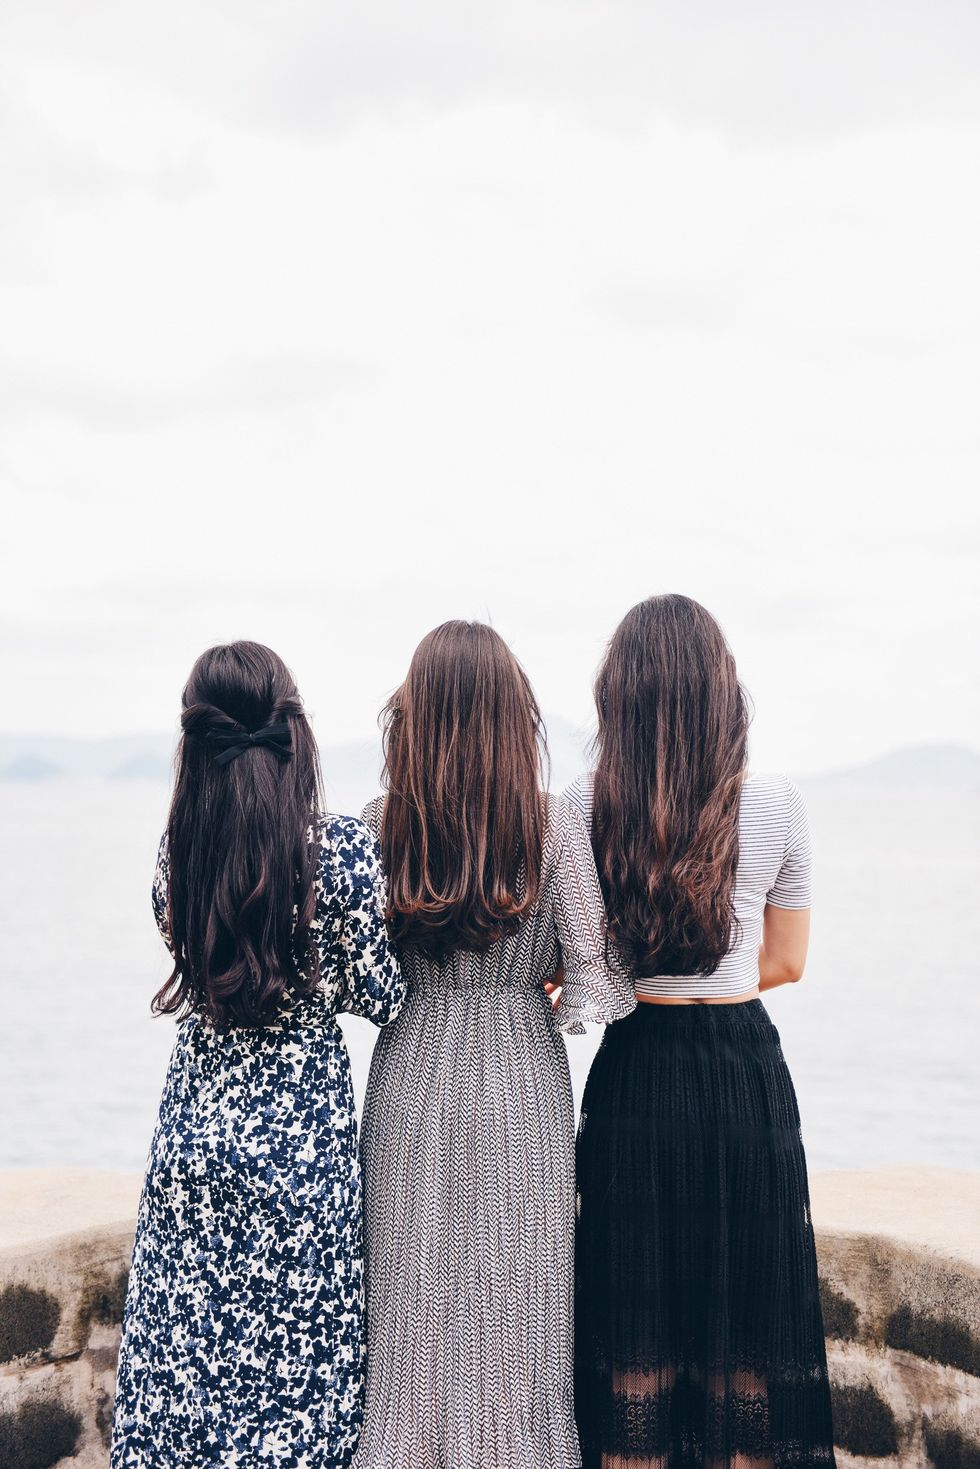 An Open Letter To The Girl Underestimated